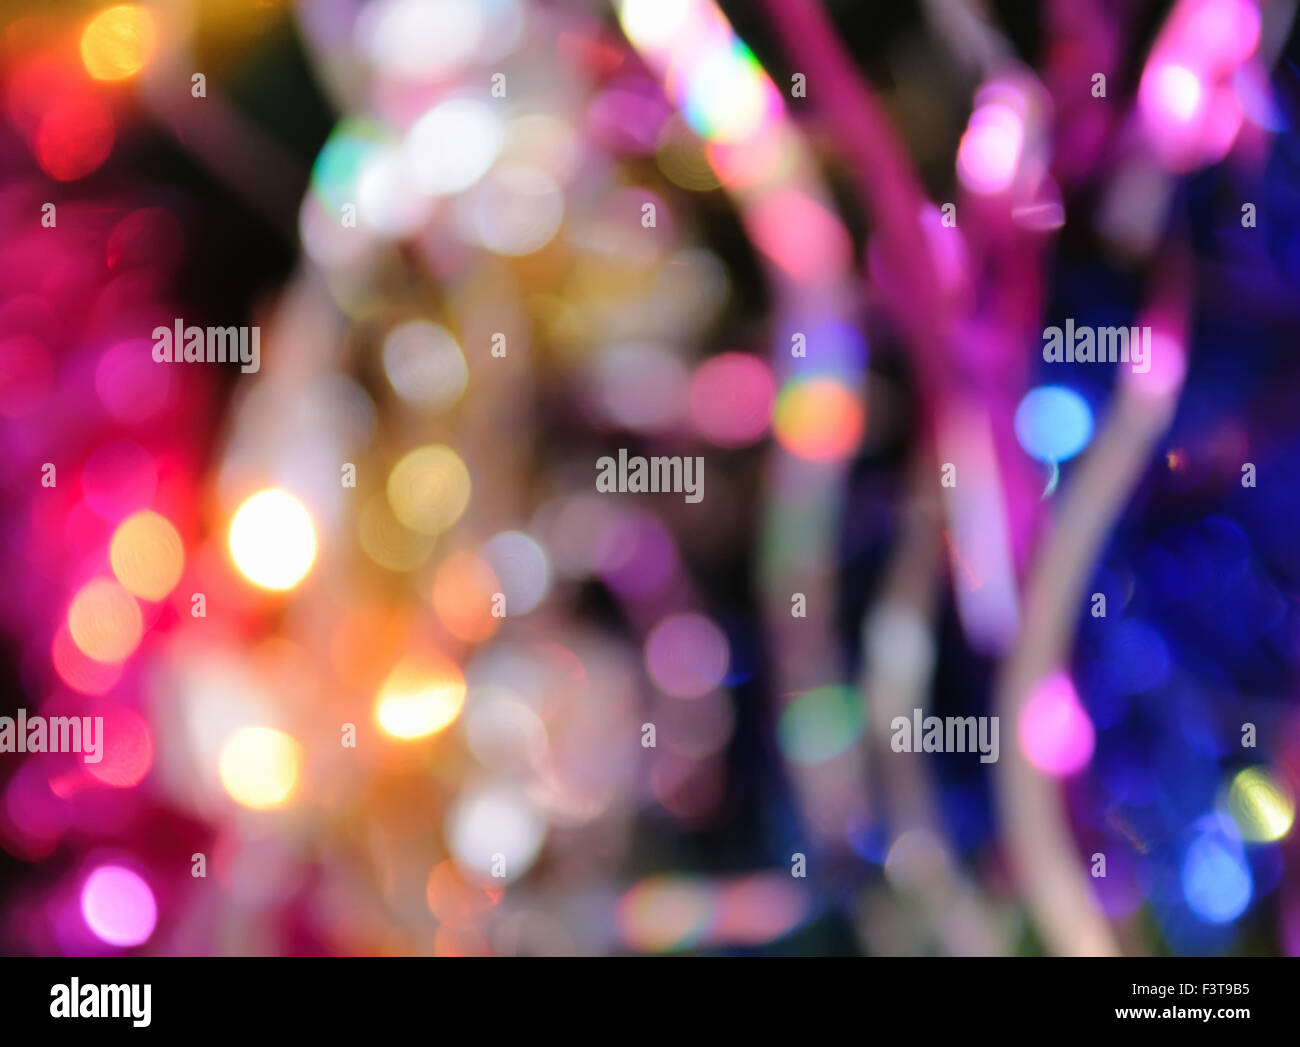 Blurred christmas lights background. De focused Light - Stock Image